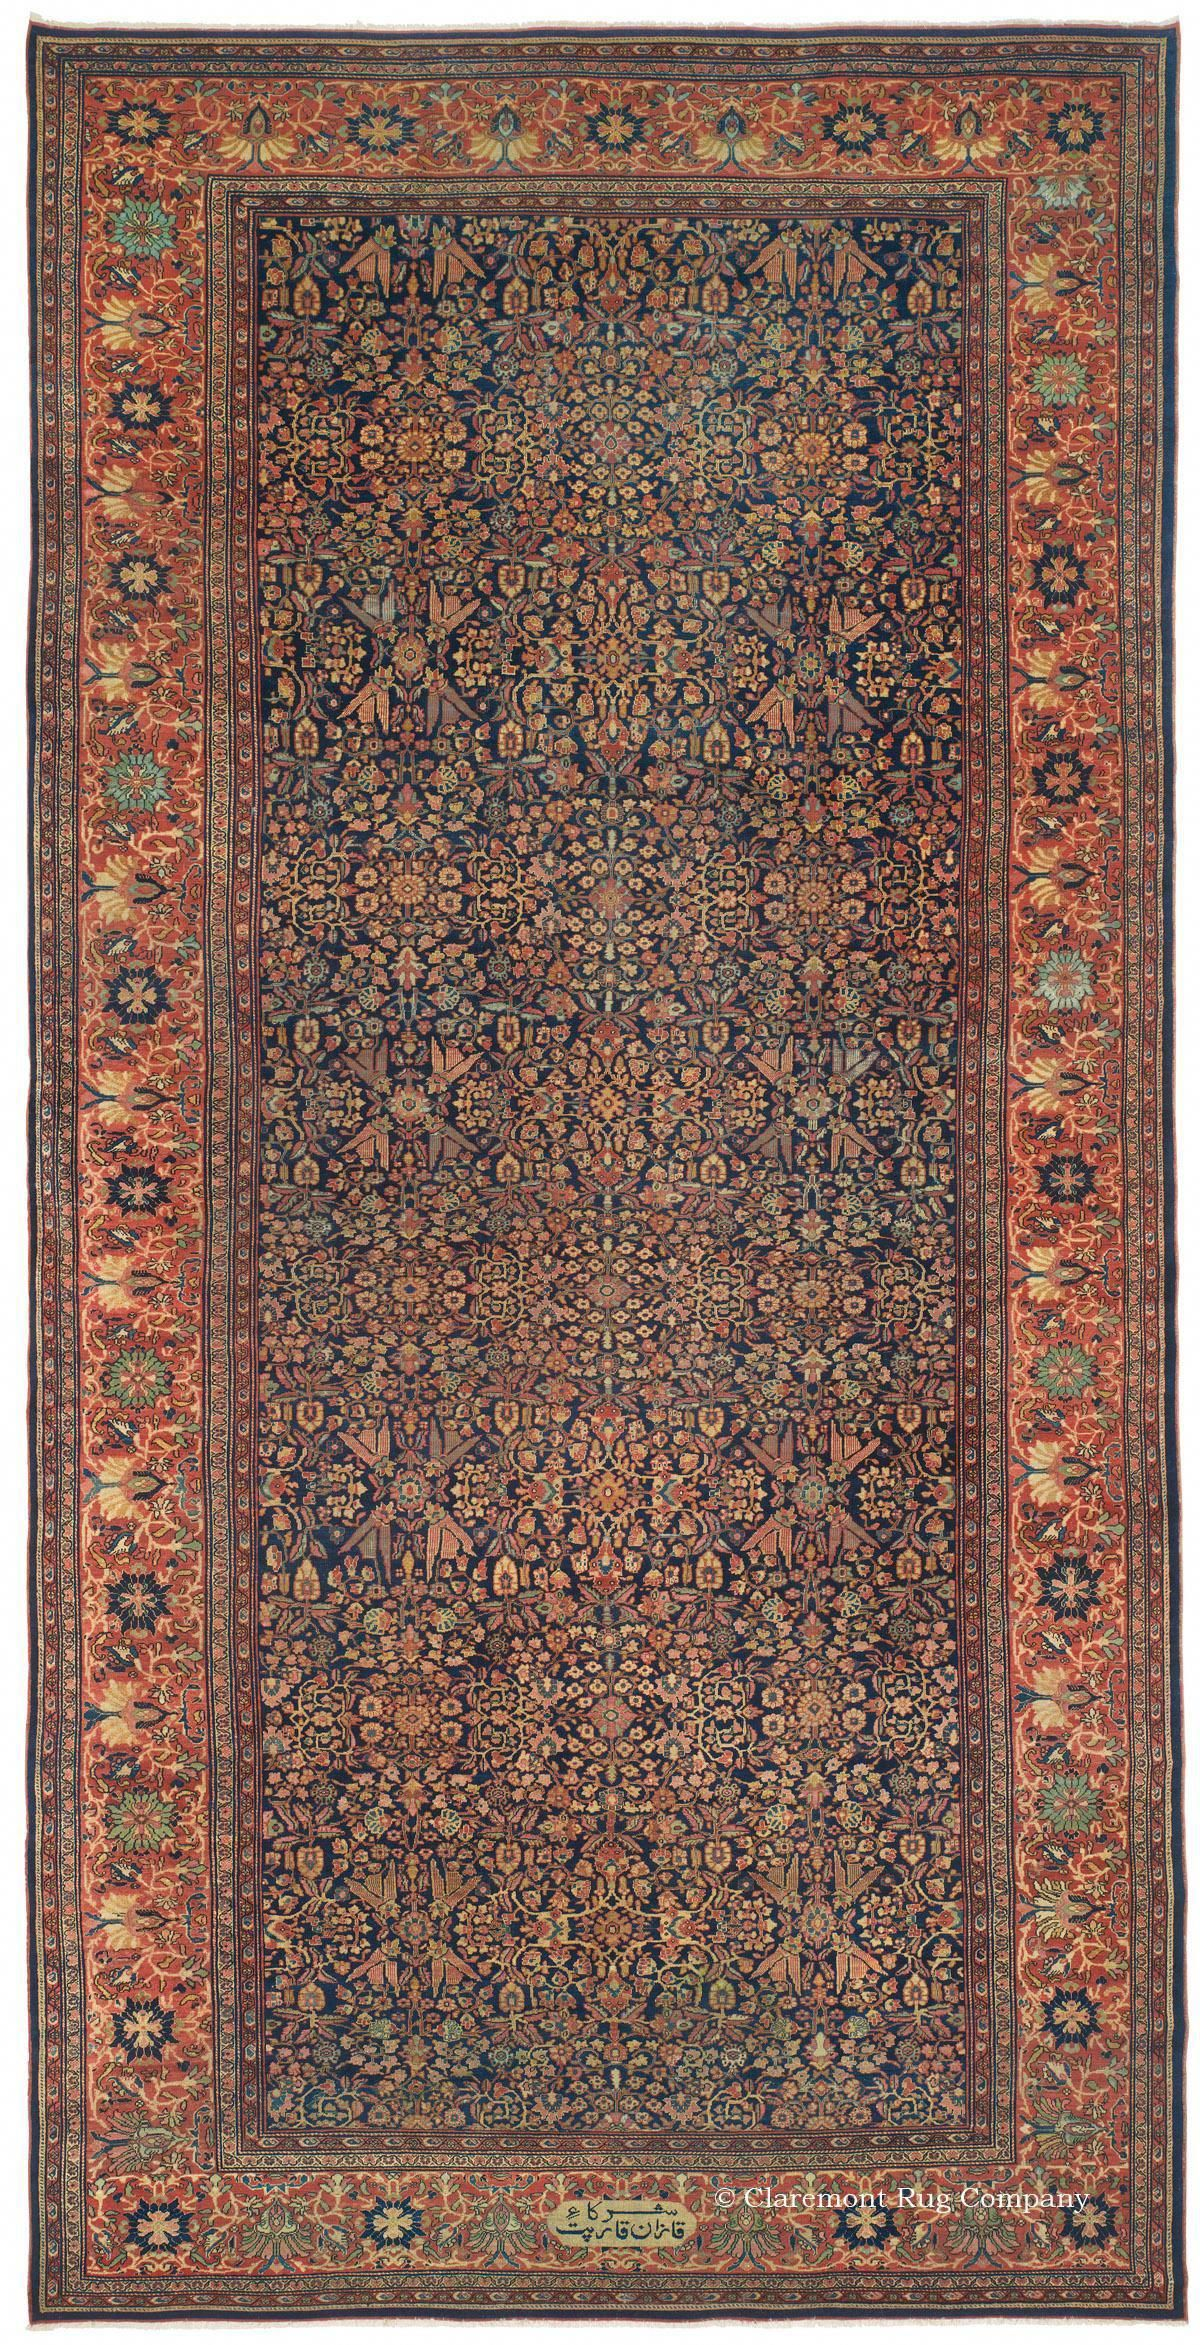 Carpet Runners By The Foot Canada 8footlongcarpetrunners Rugs On Carpet Antique Persian Rug Antique Persian Carpet